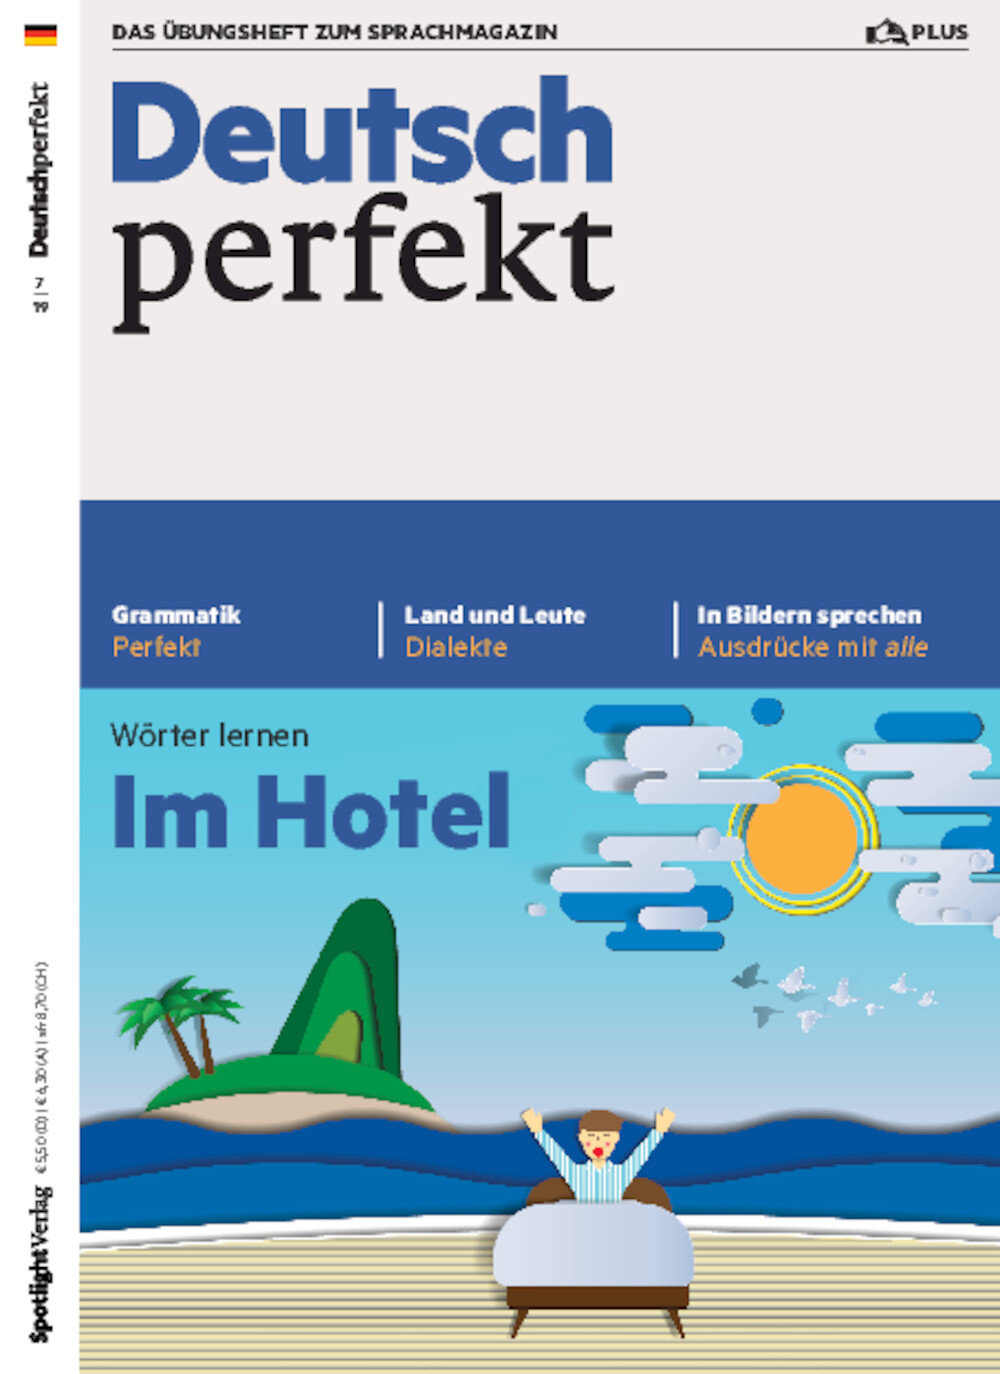 Deutsch perfekt PLUS 07/2019